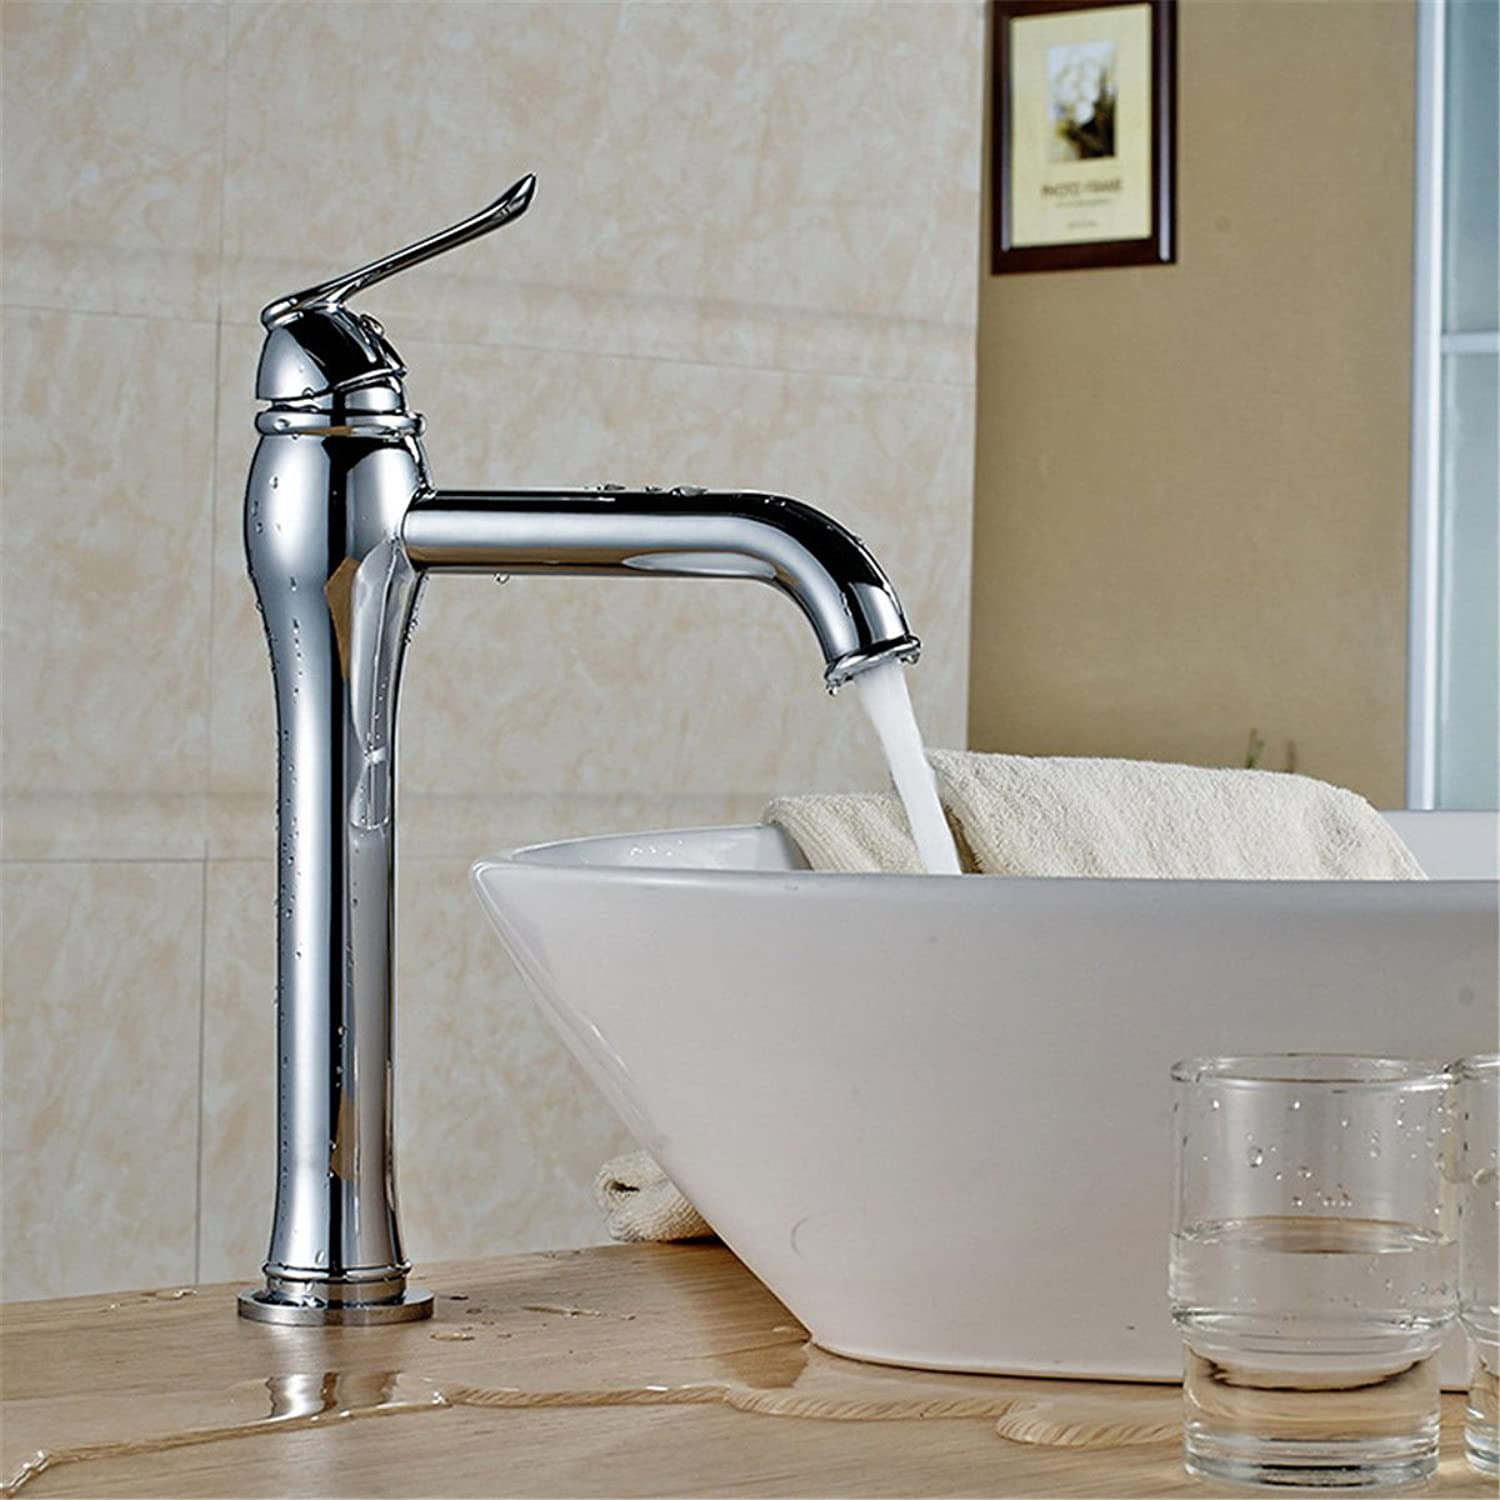 AQMMi Basin Sink Mixer Tap for Lavatory Chrome Single Lever Hot and Cold Water Bathroom Vanity Sink Faucet